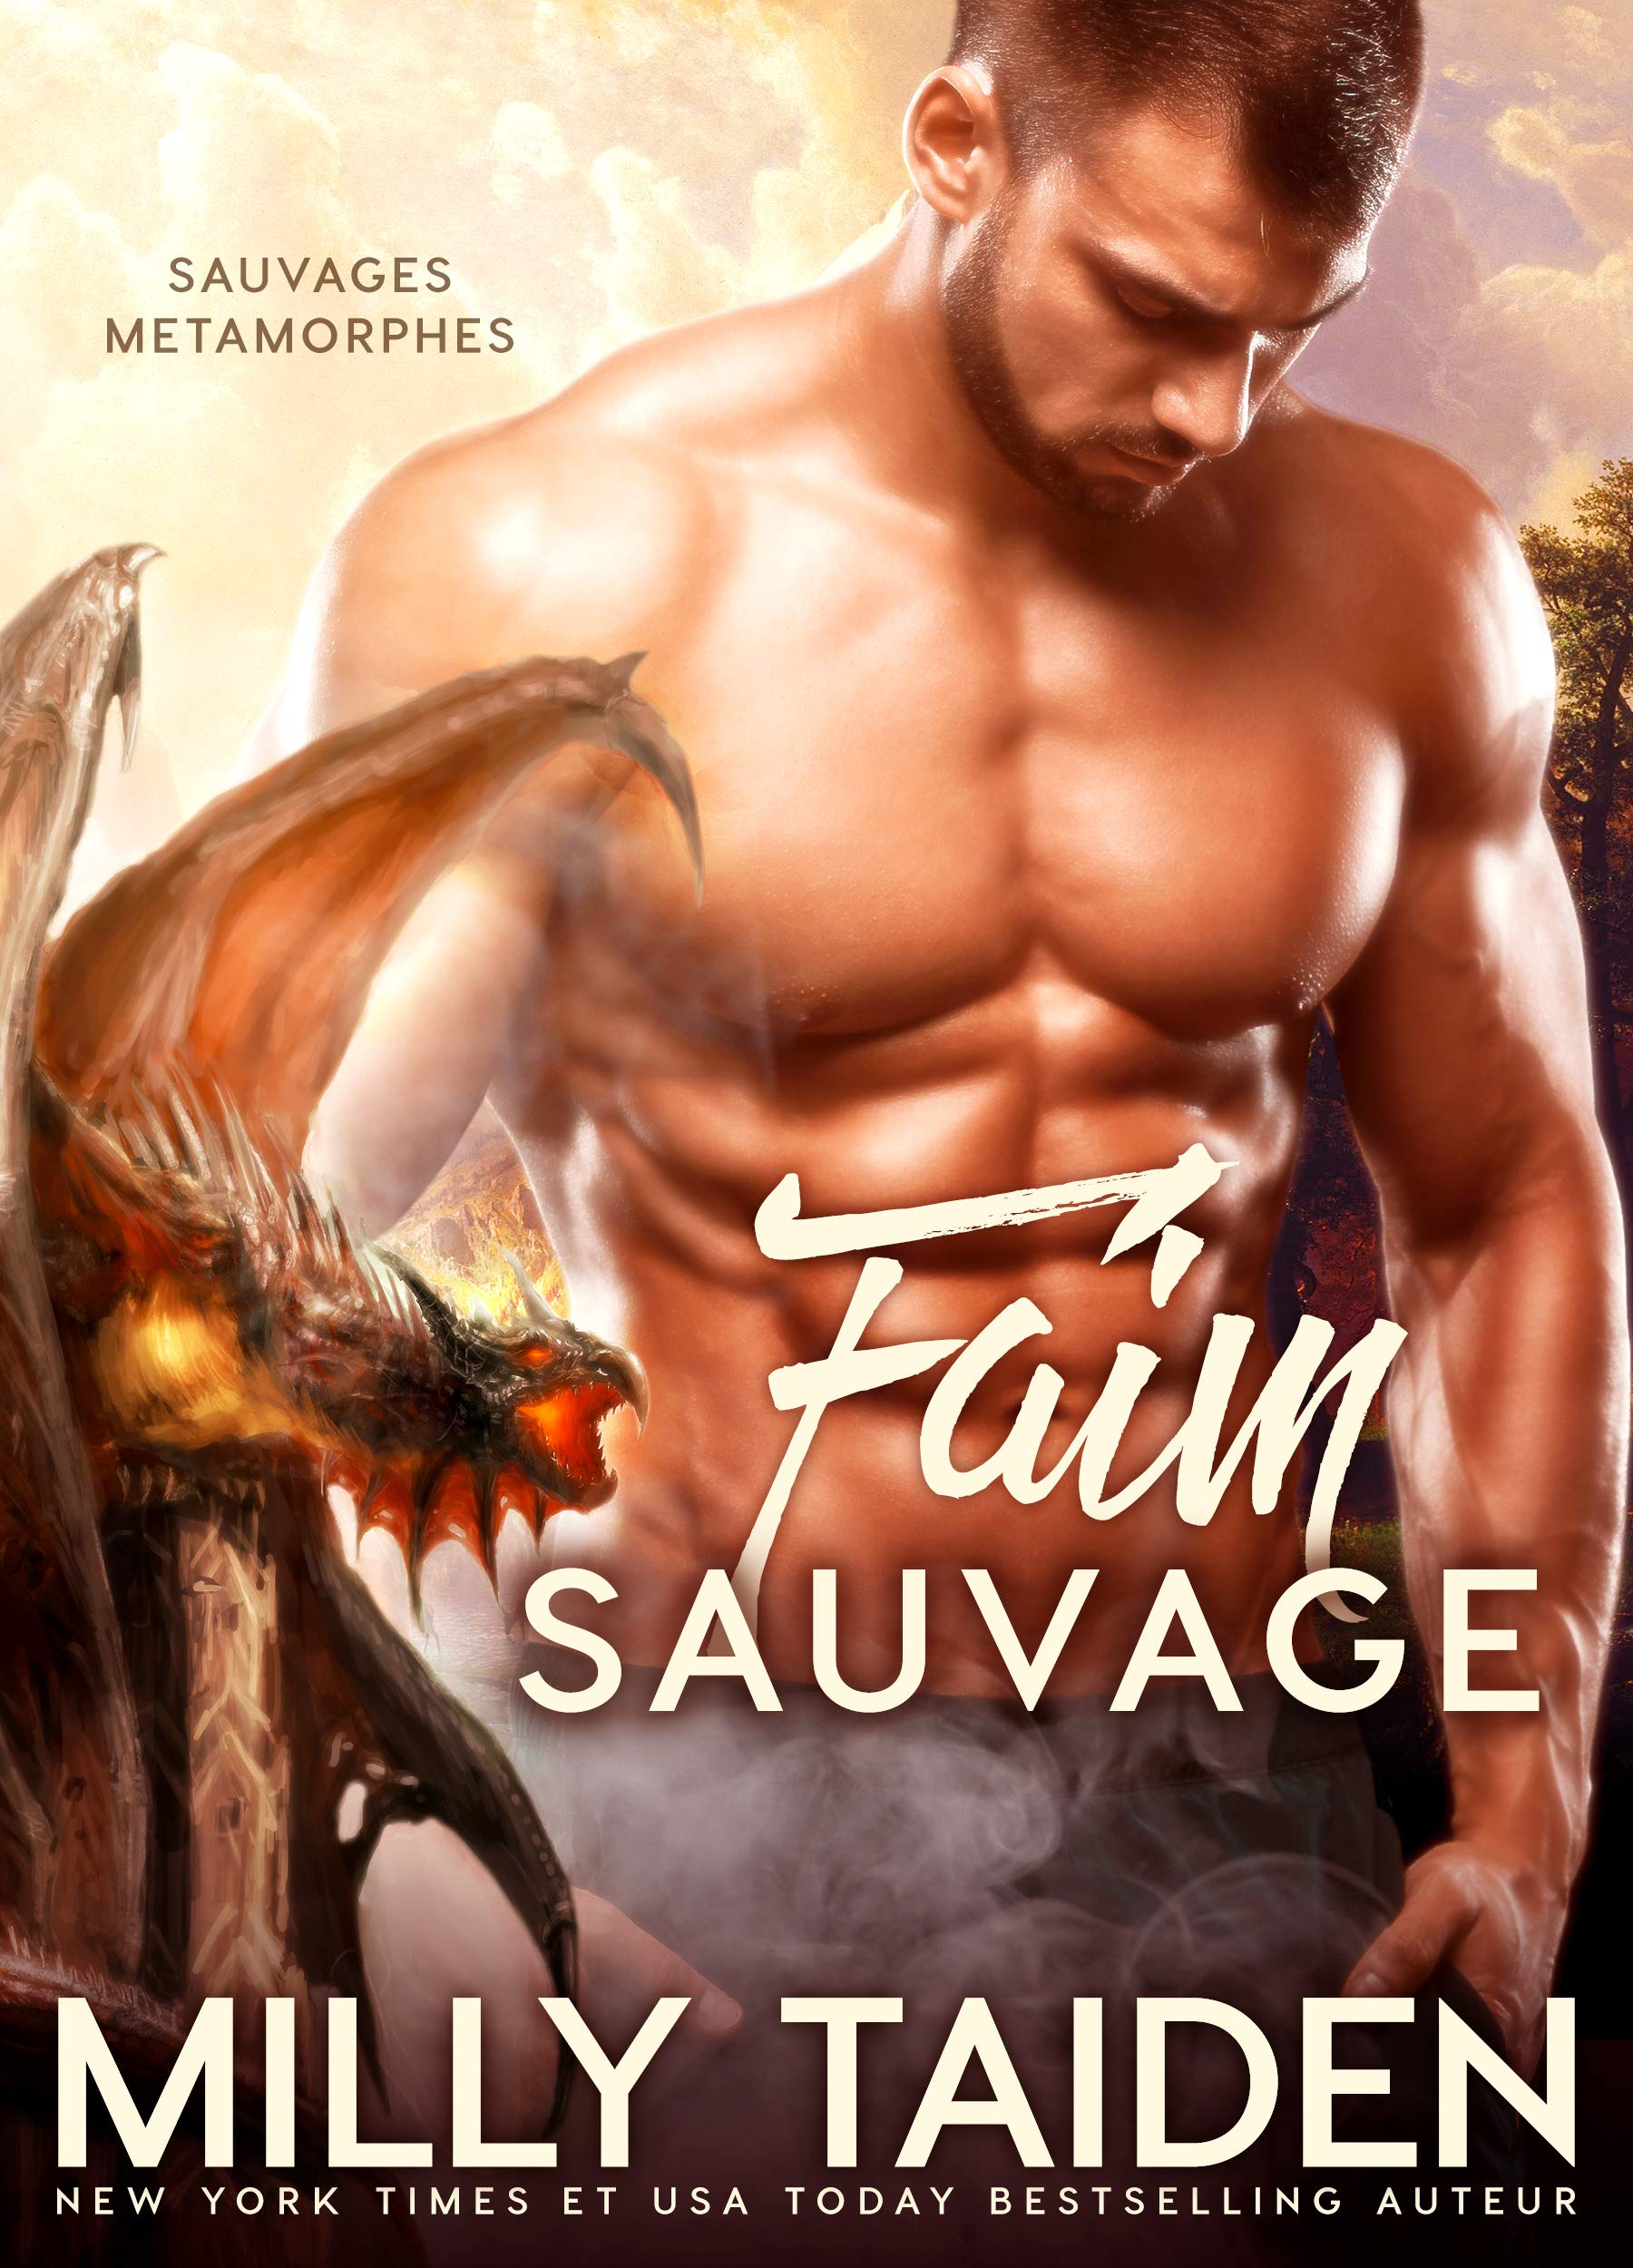 Faim Sauvage: Romance Paranormale (Sauvages Metamorphes t. 3) por Milly Taiden